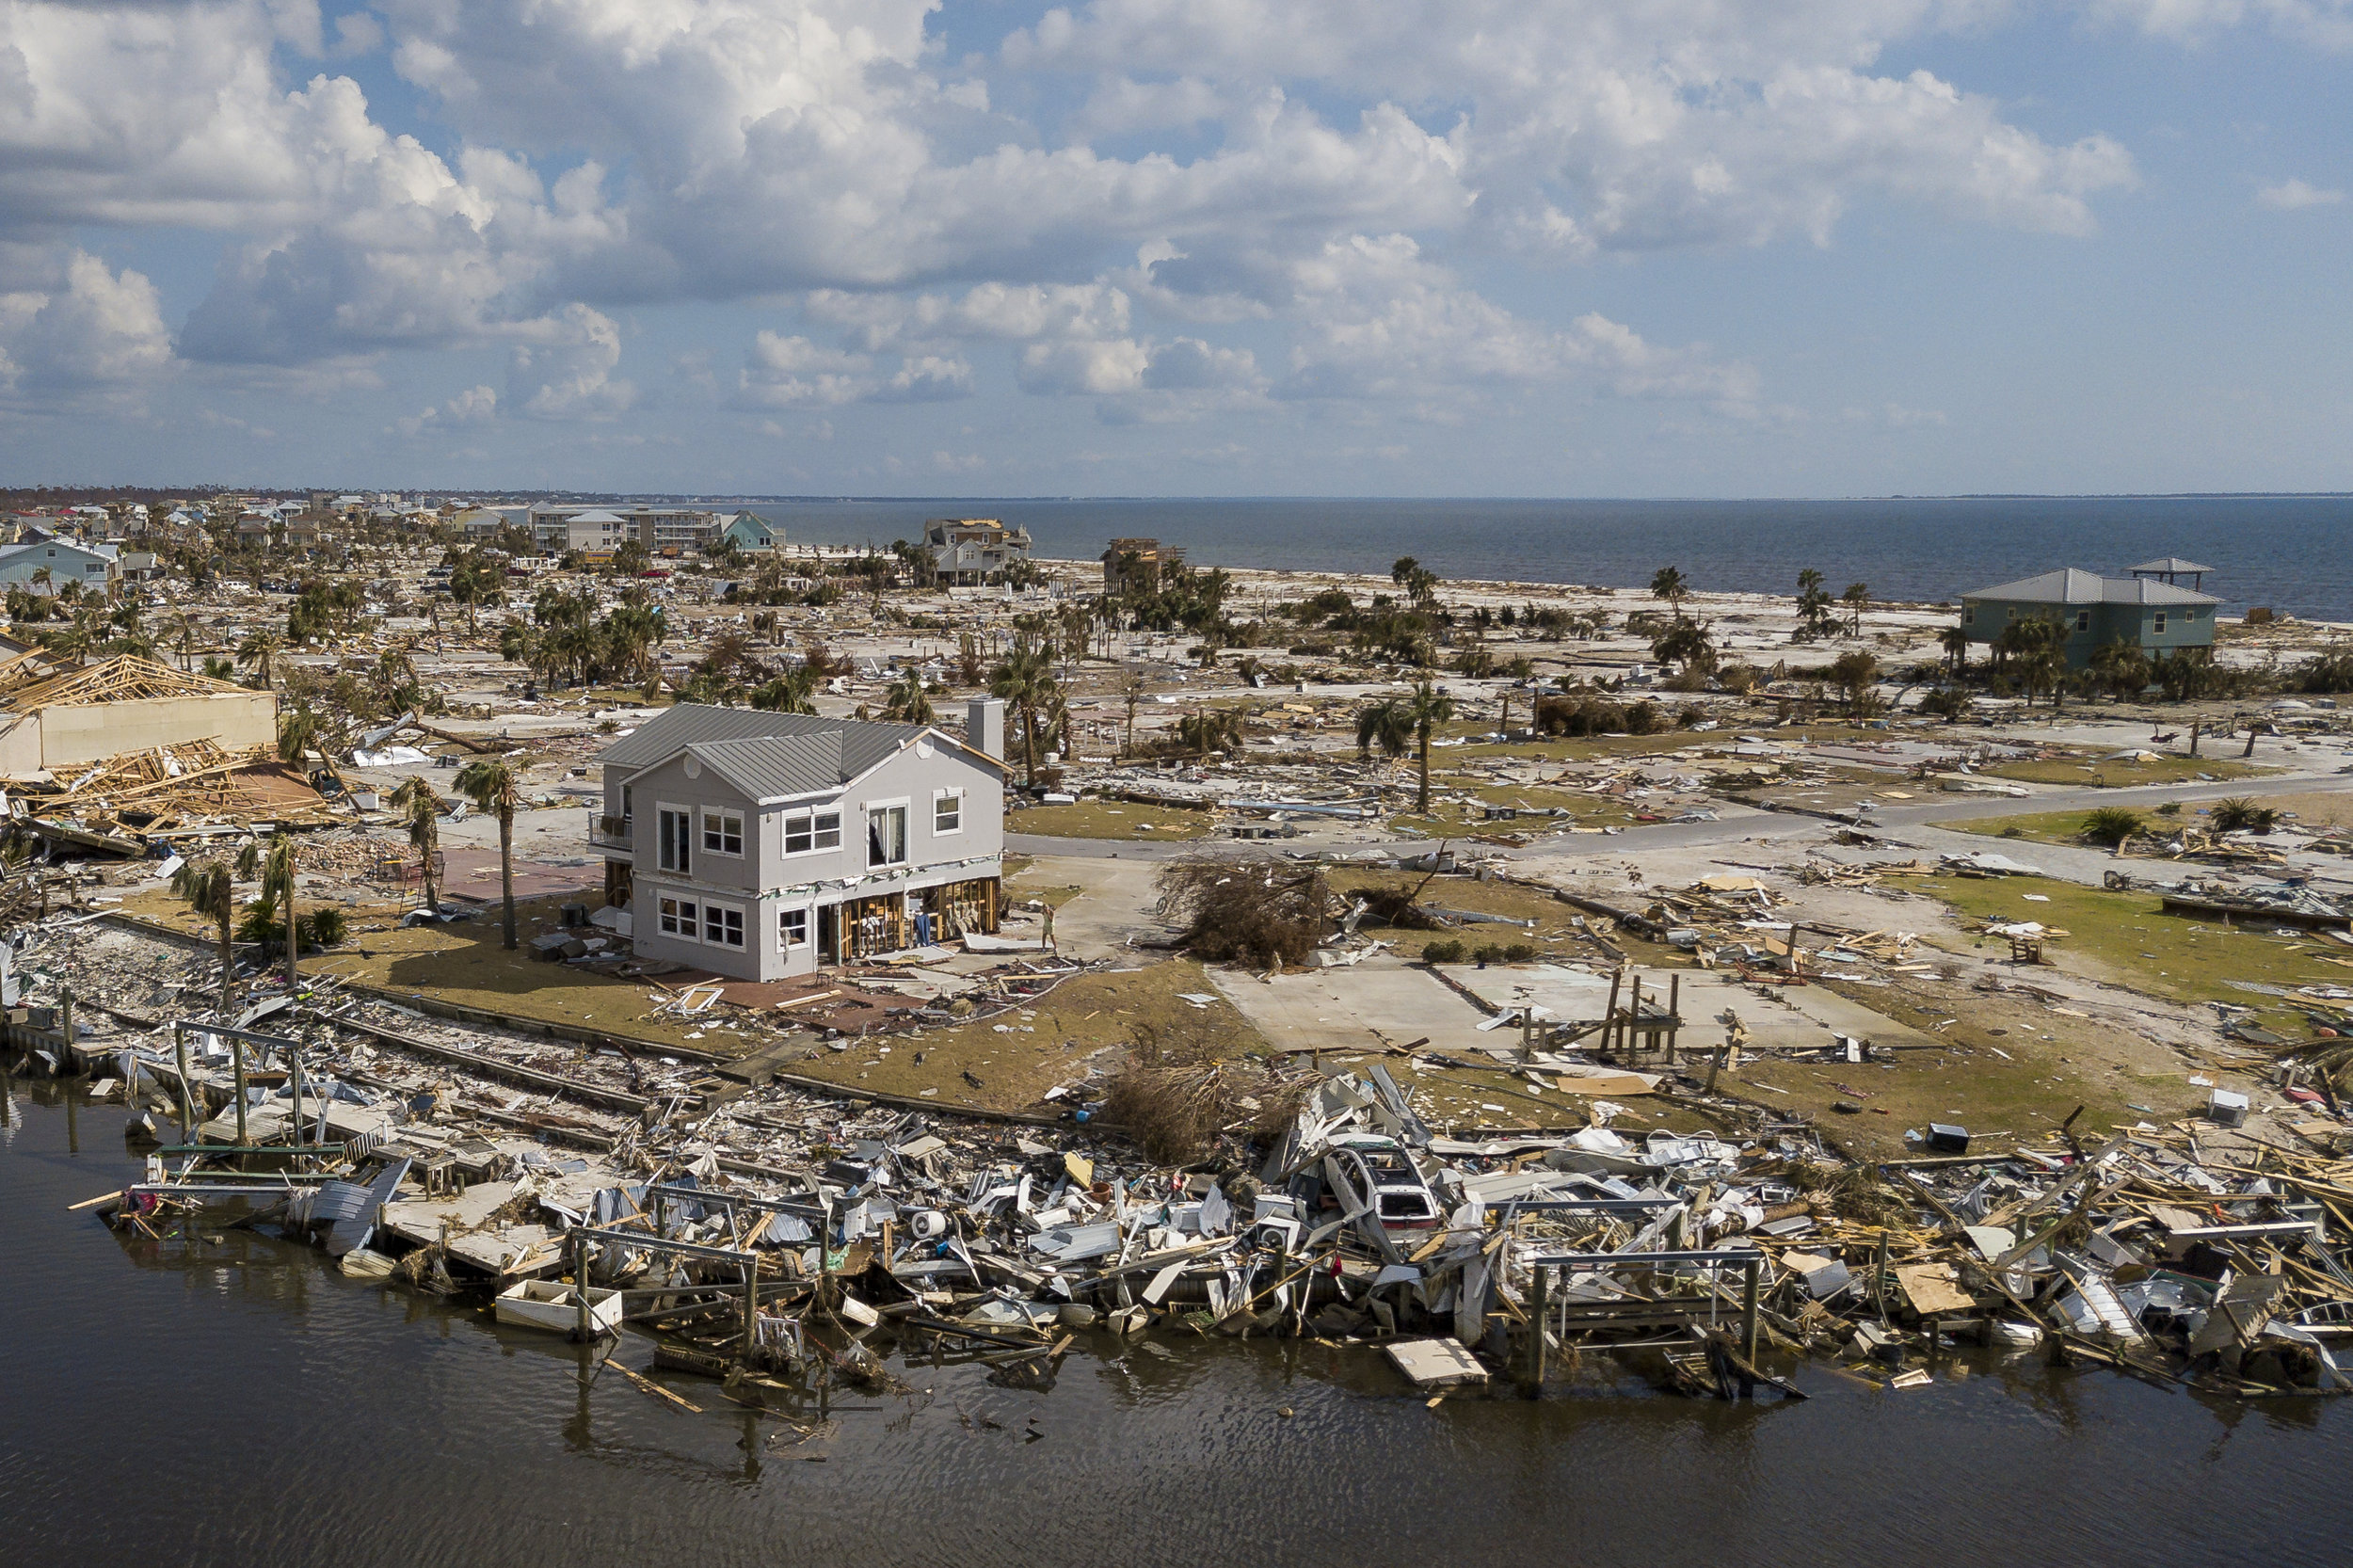 Aerial view of rubble and structural damage in Mexico Beach, Florida on Friday, October, 19, 2018. Hurricane Michael devastated the Florida Panhandle leaving tens of thousands without food, power or shelter.